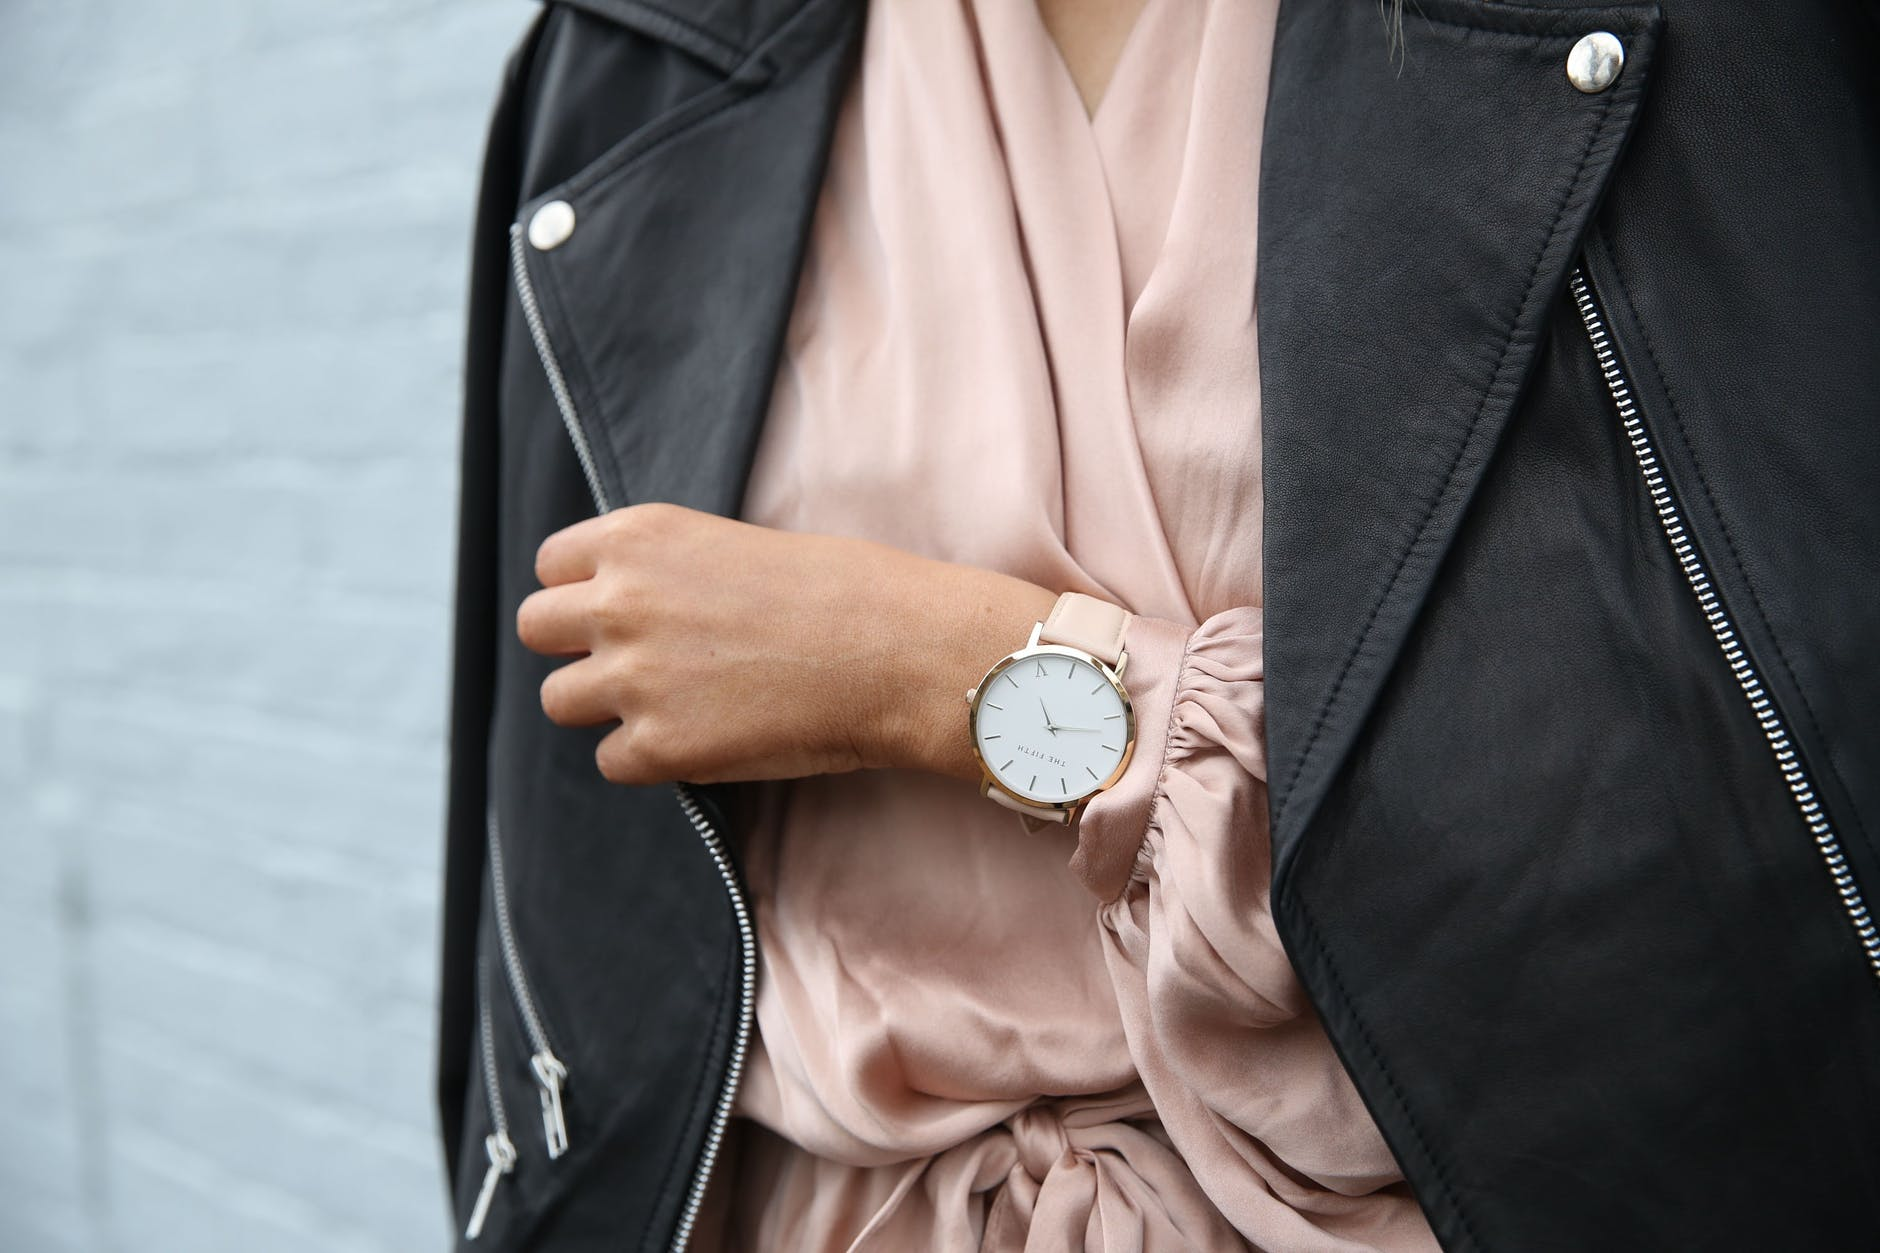 woman's hand wearing a luxury watch